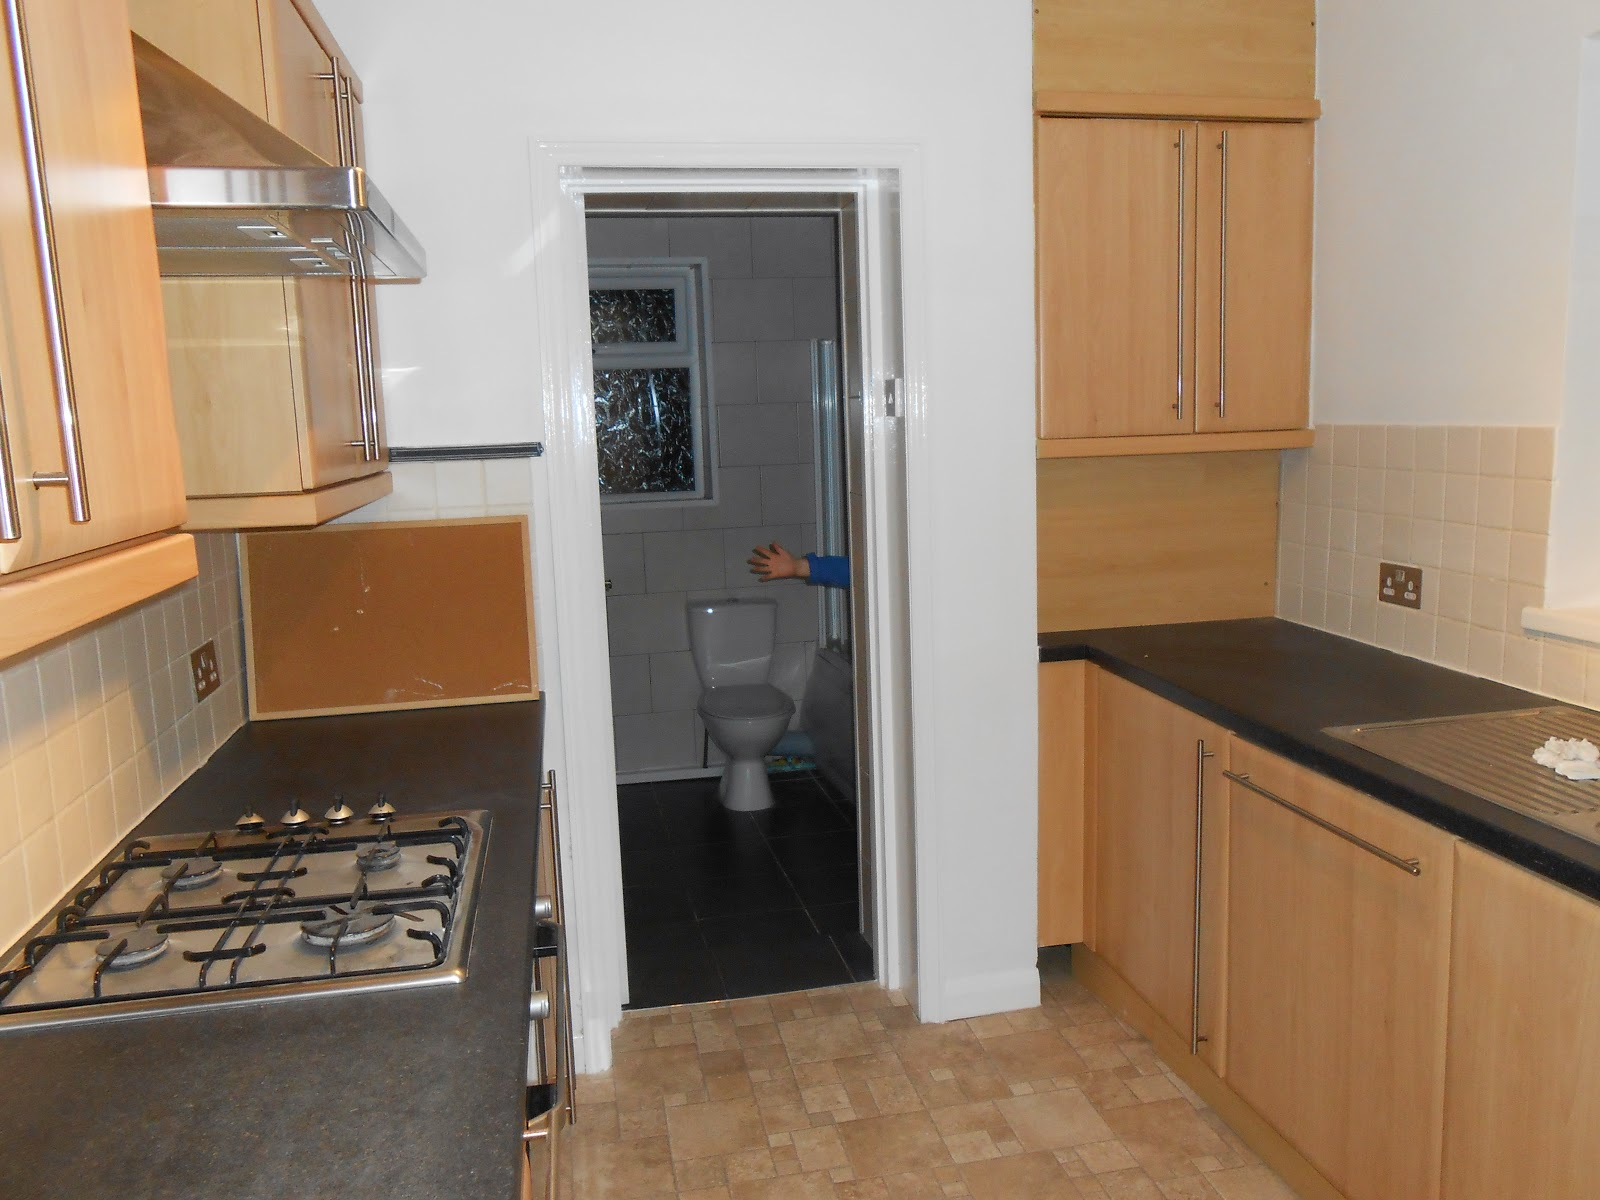 fitted kitchen in investment property for rent to families